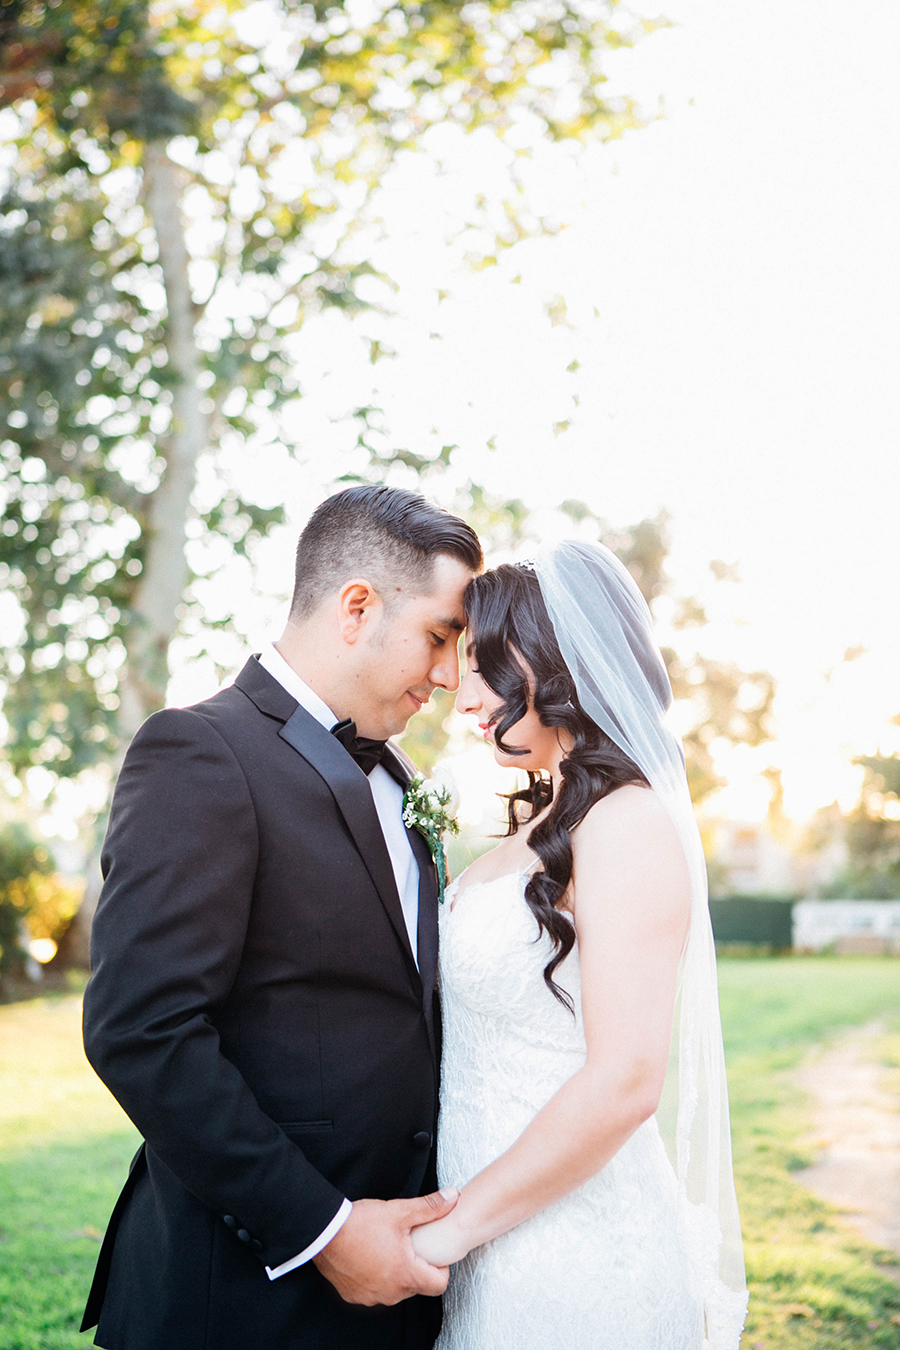 romantic-calamigos-losangeles-burbank-wedding-by-gabrielagandara-29